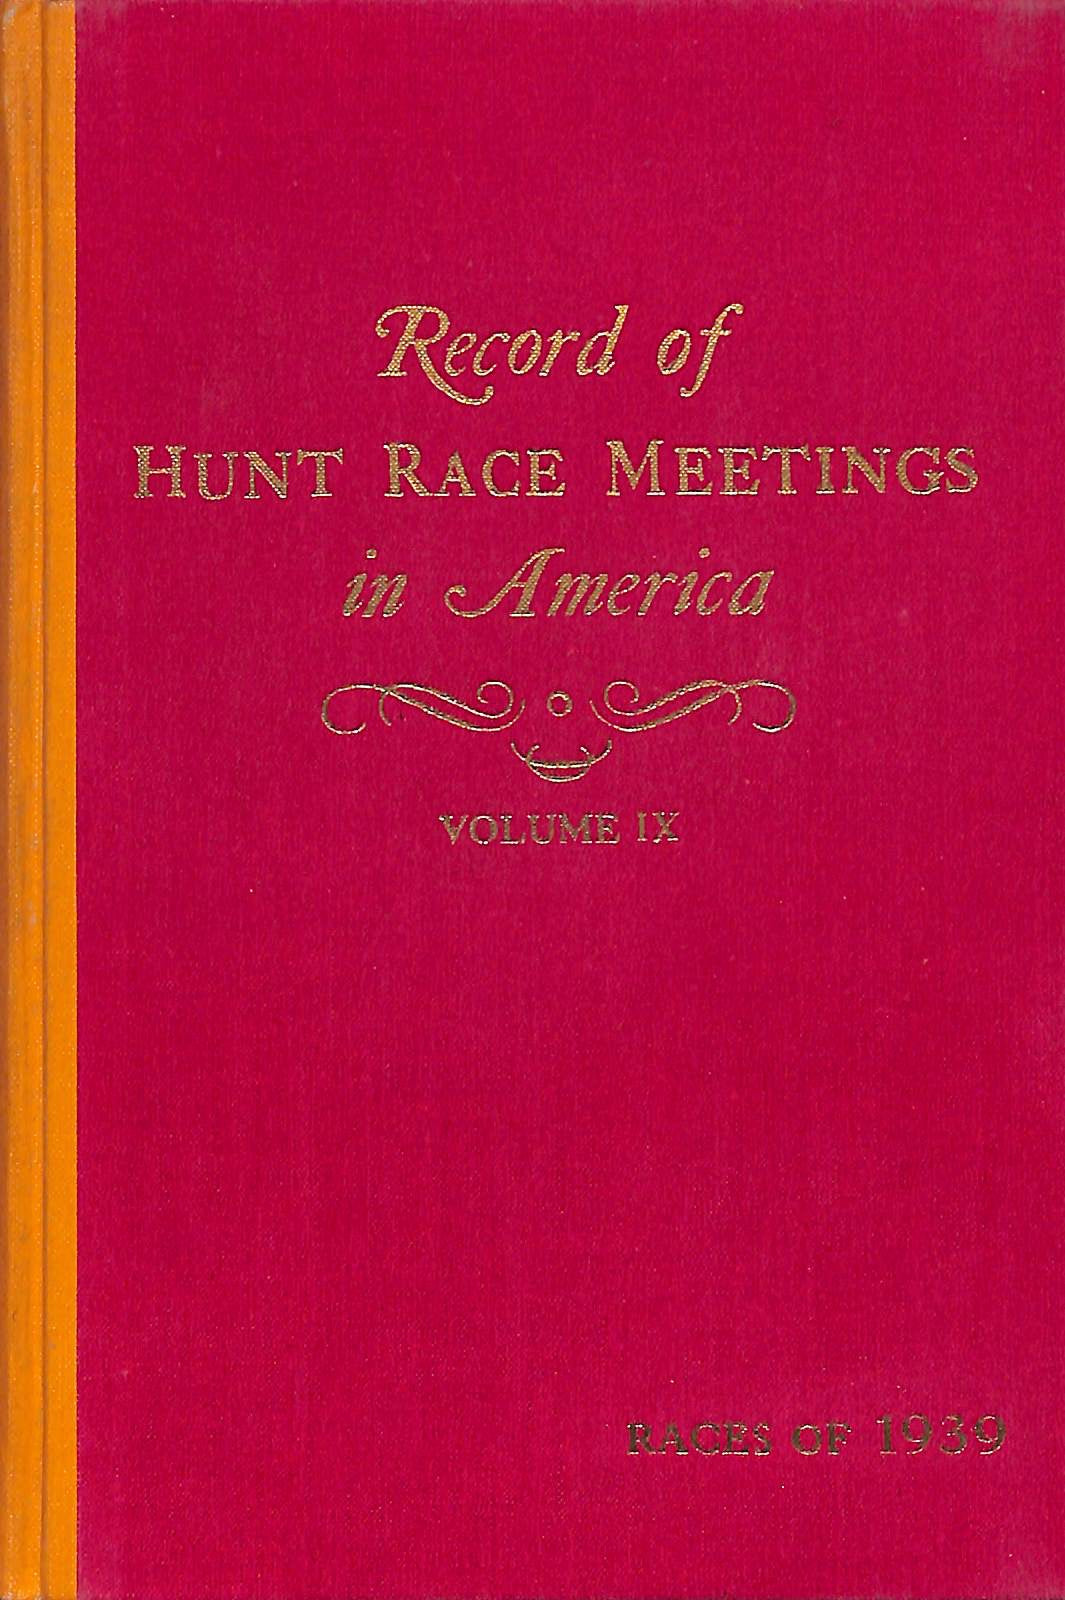 """Record of Hunt Race Meetings in America- Volume IX, Races of 1939"" 1940 VISCHER, Peter"